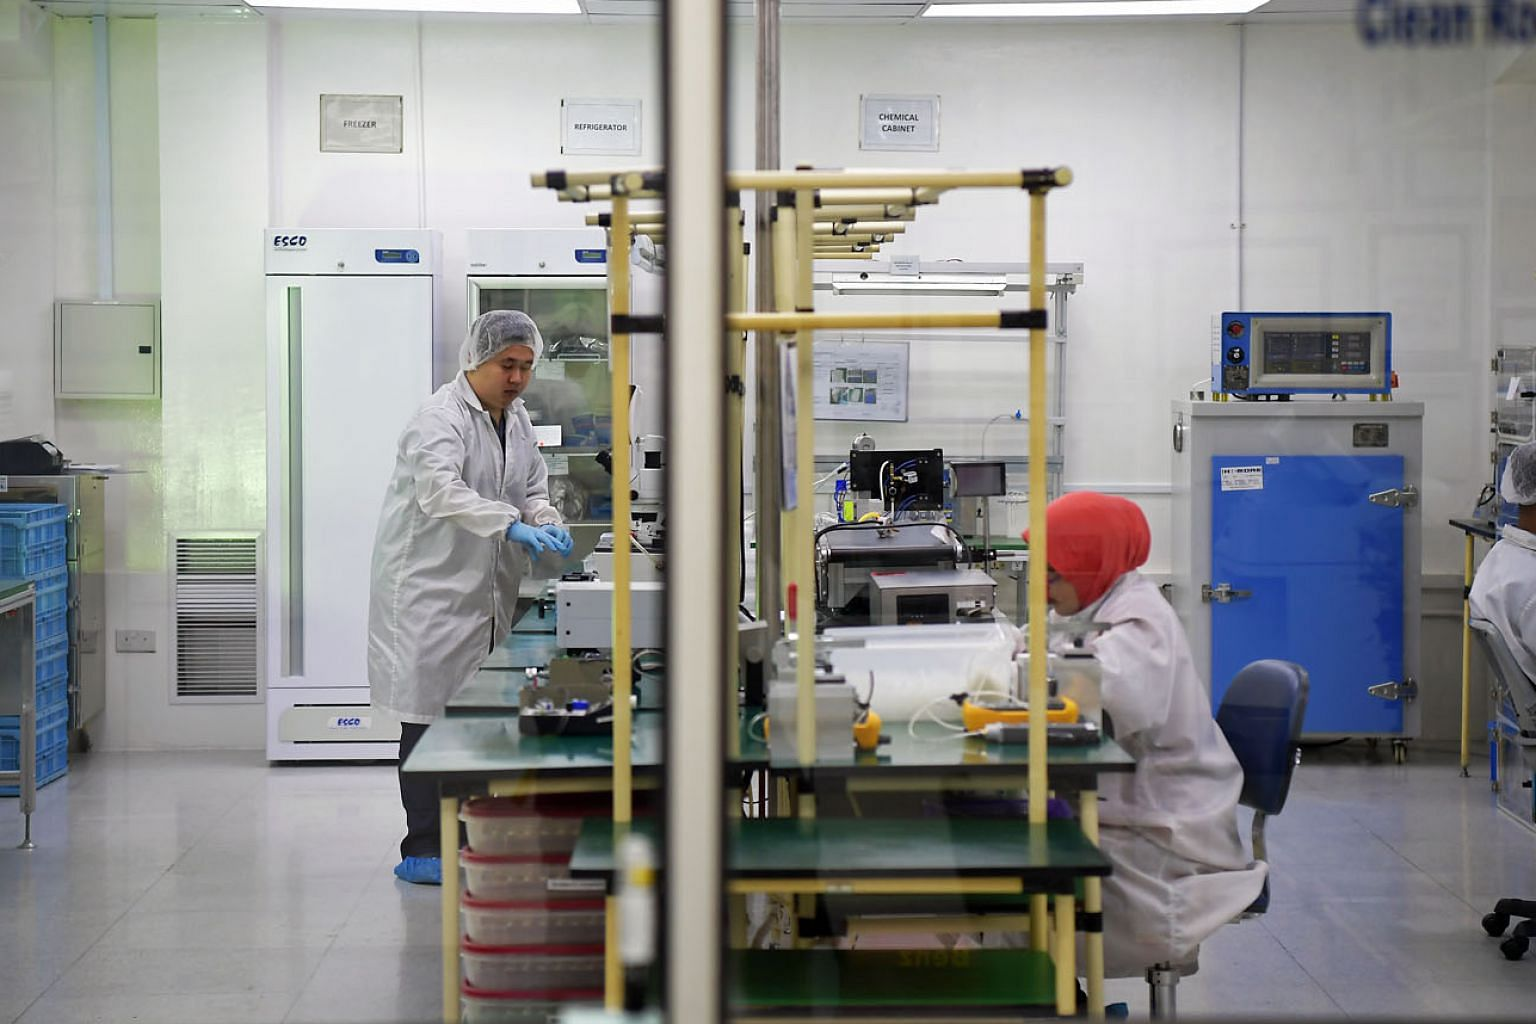 Employees working in the assembly department of a firm which designs and manufactures high-value medical devices and lab equipment. A report released by Euromonitor International revealed that an overwhelming number of respondents felt that growth wo